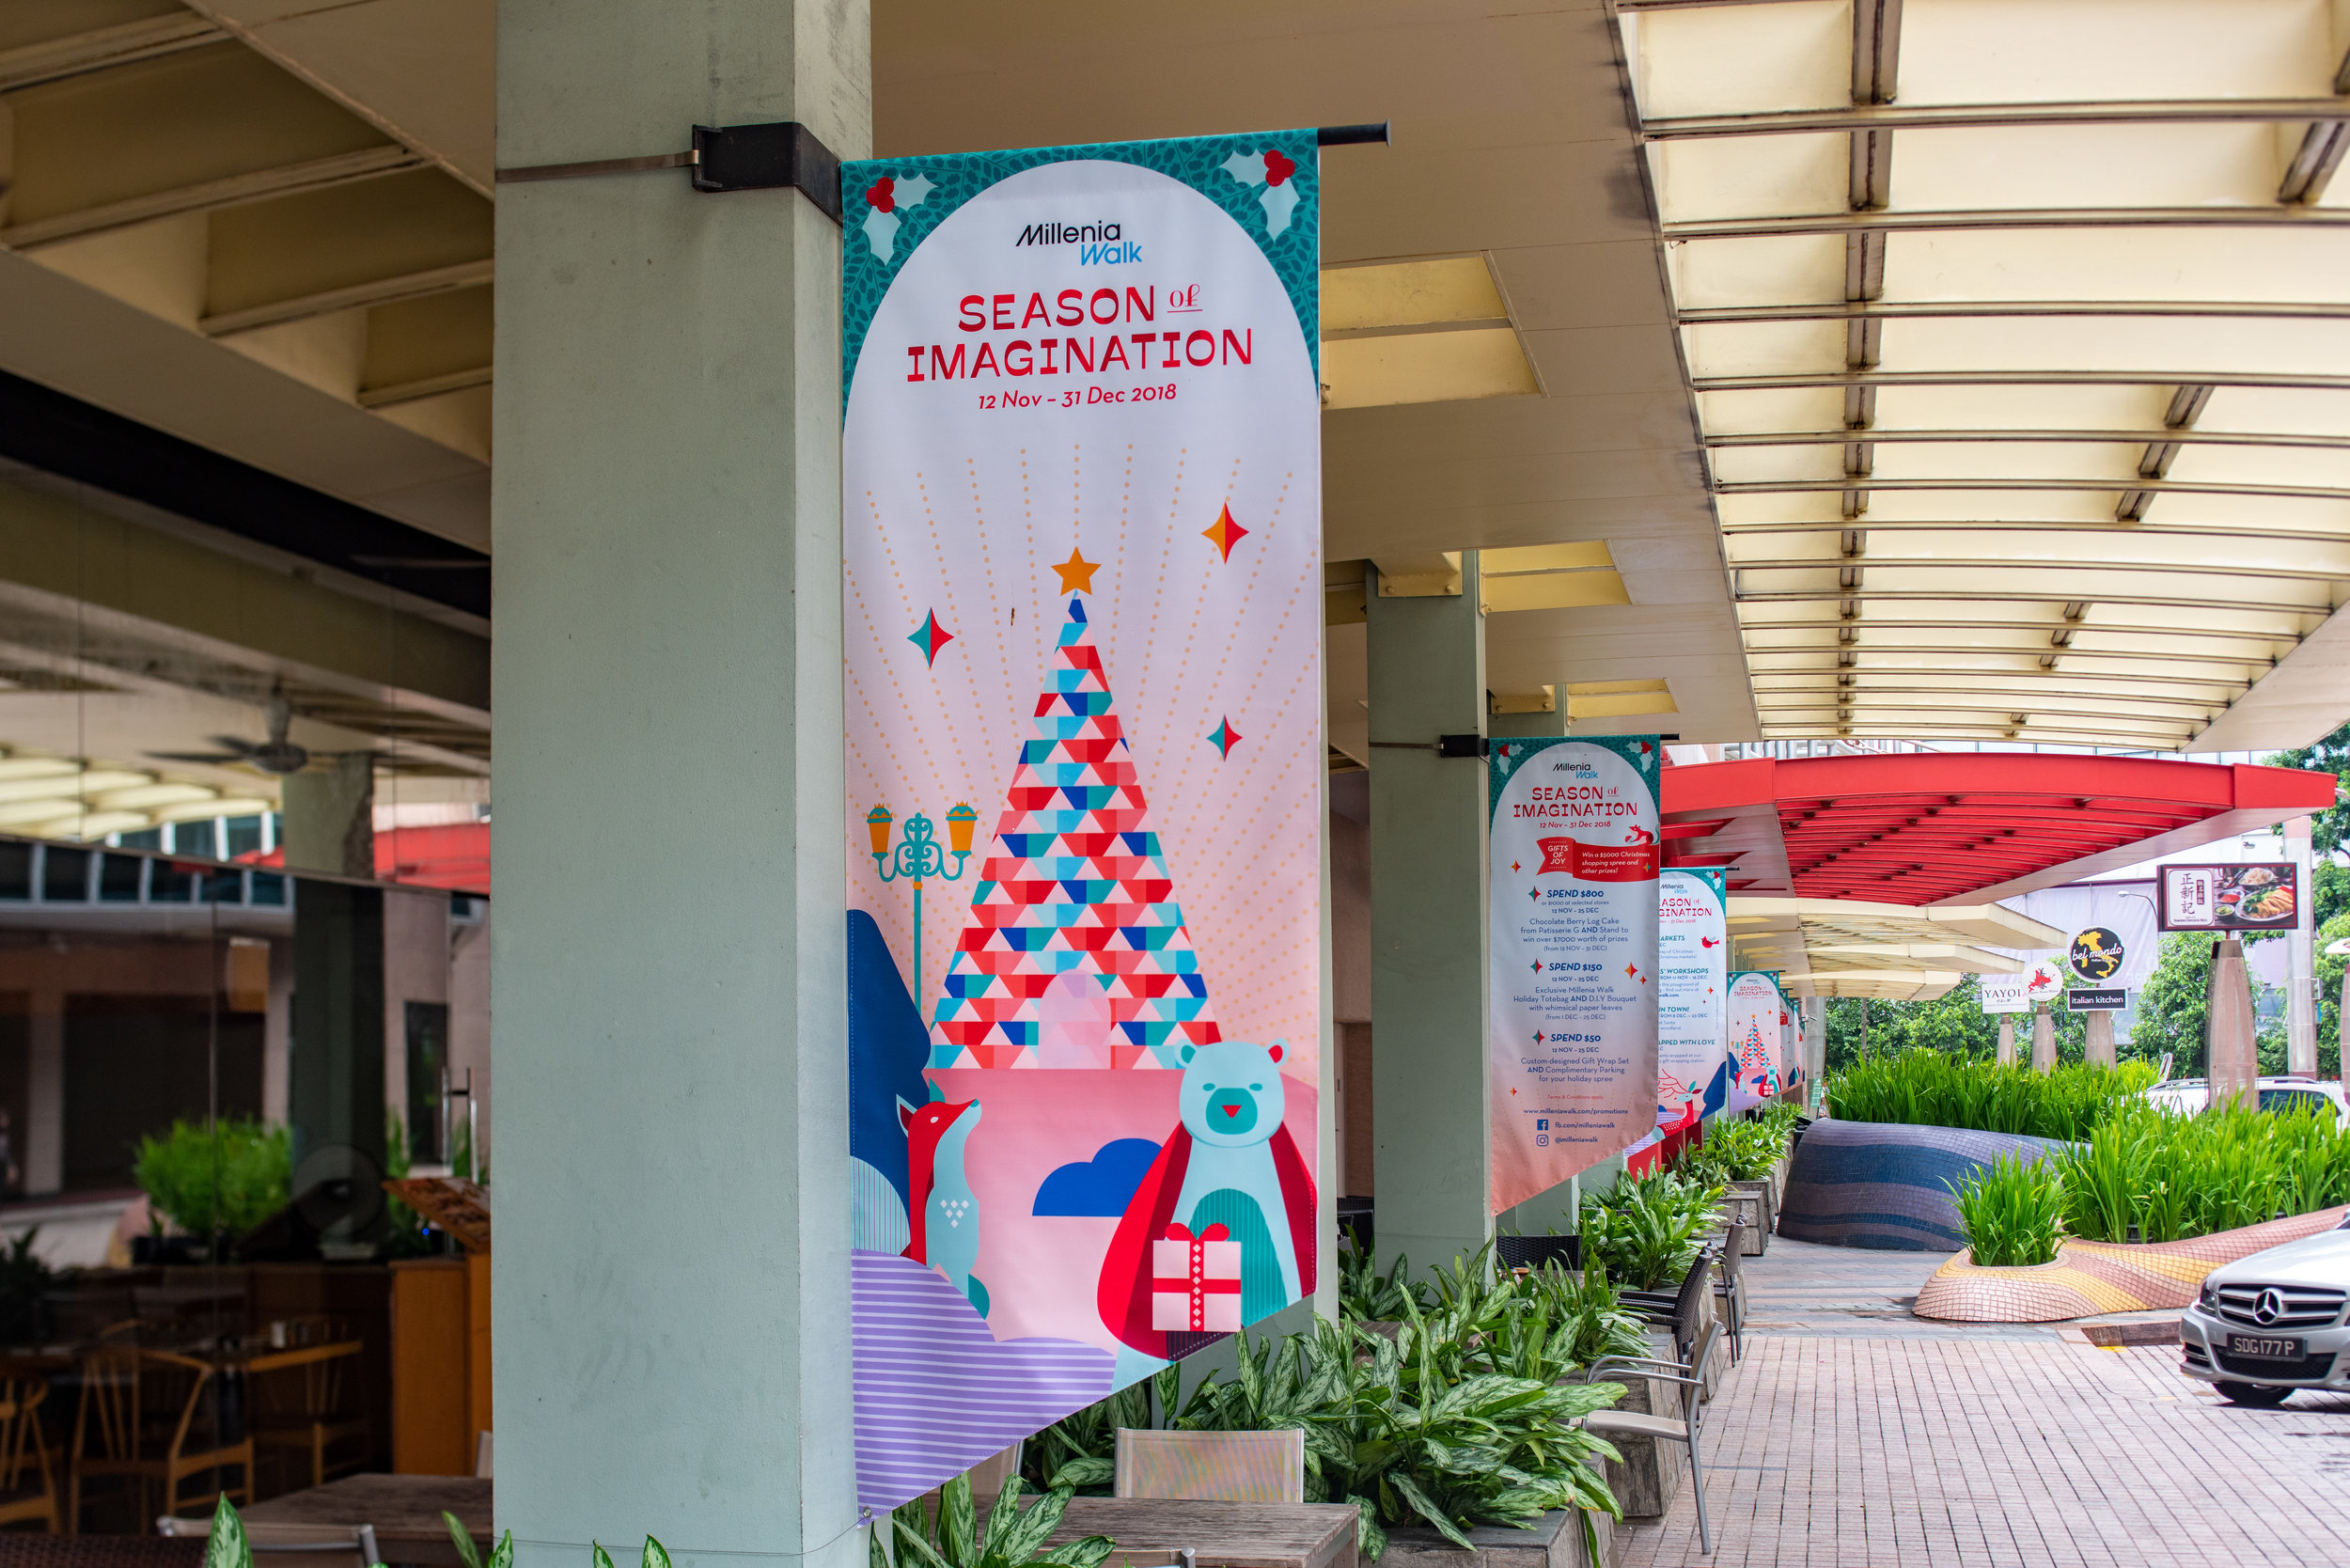 outeredit - Millenia Walk - Season of Imagination - park and dine banners